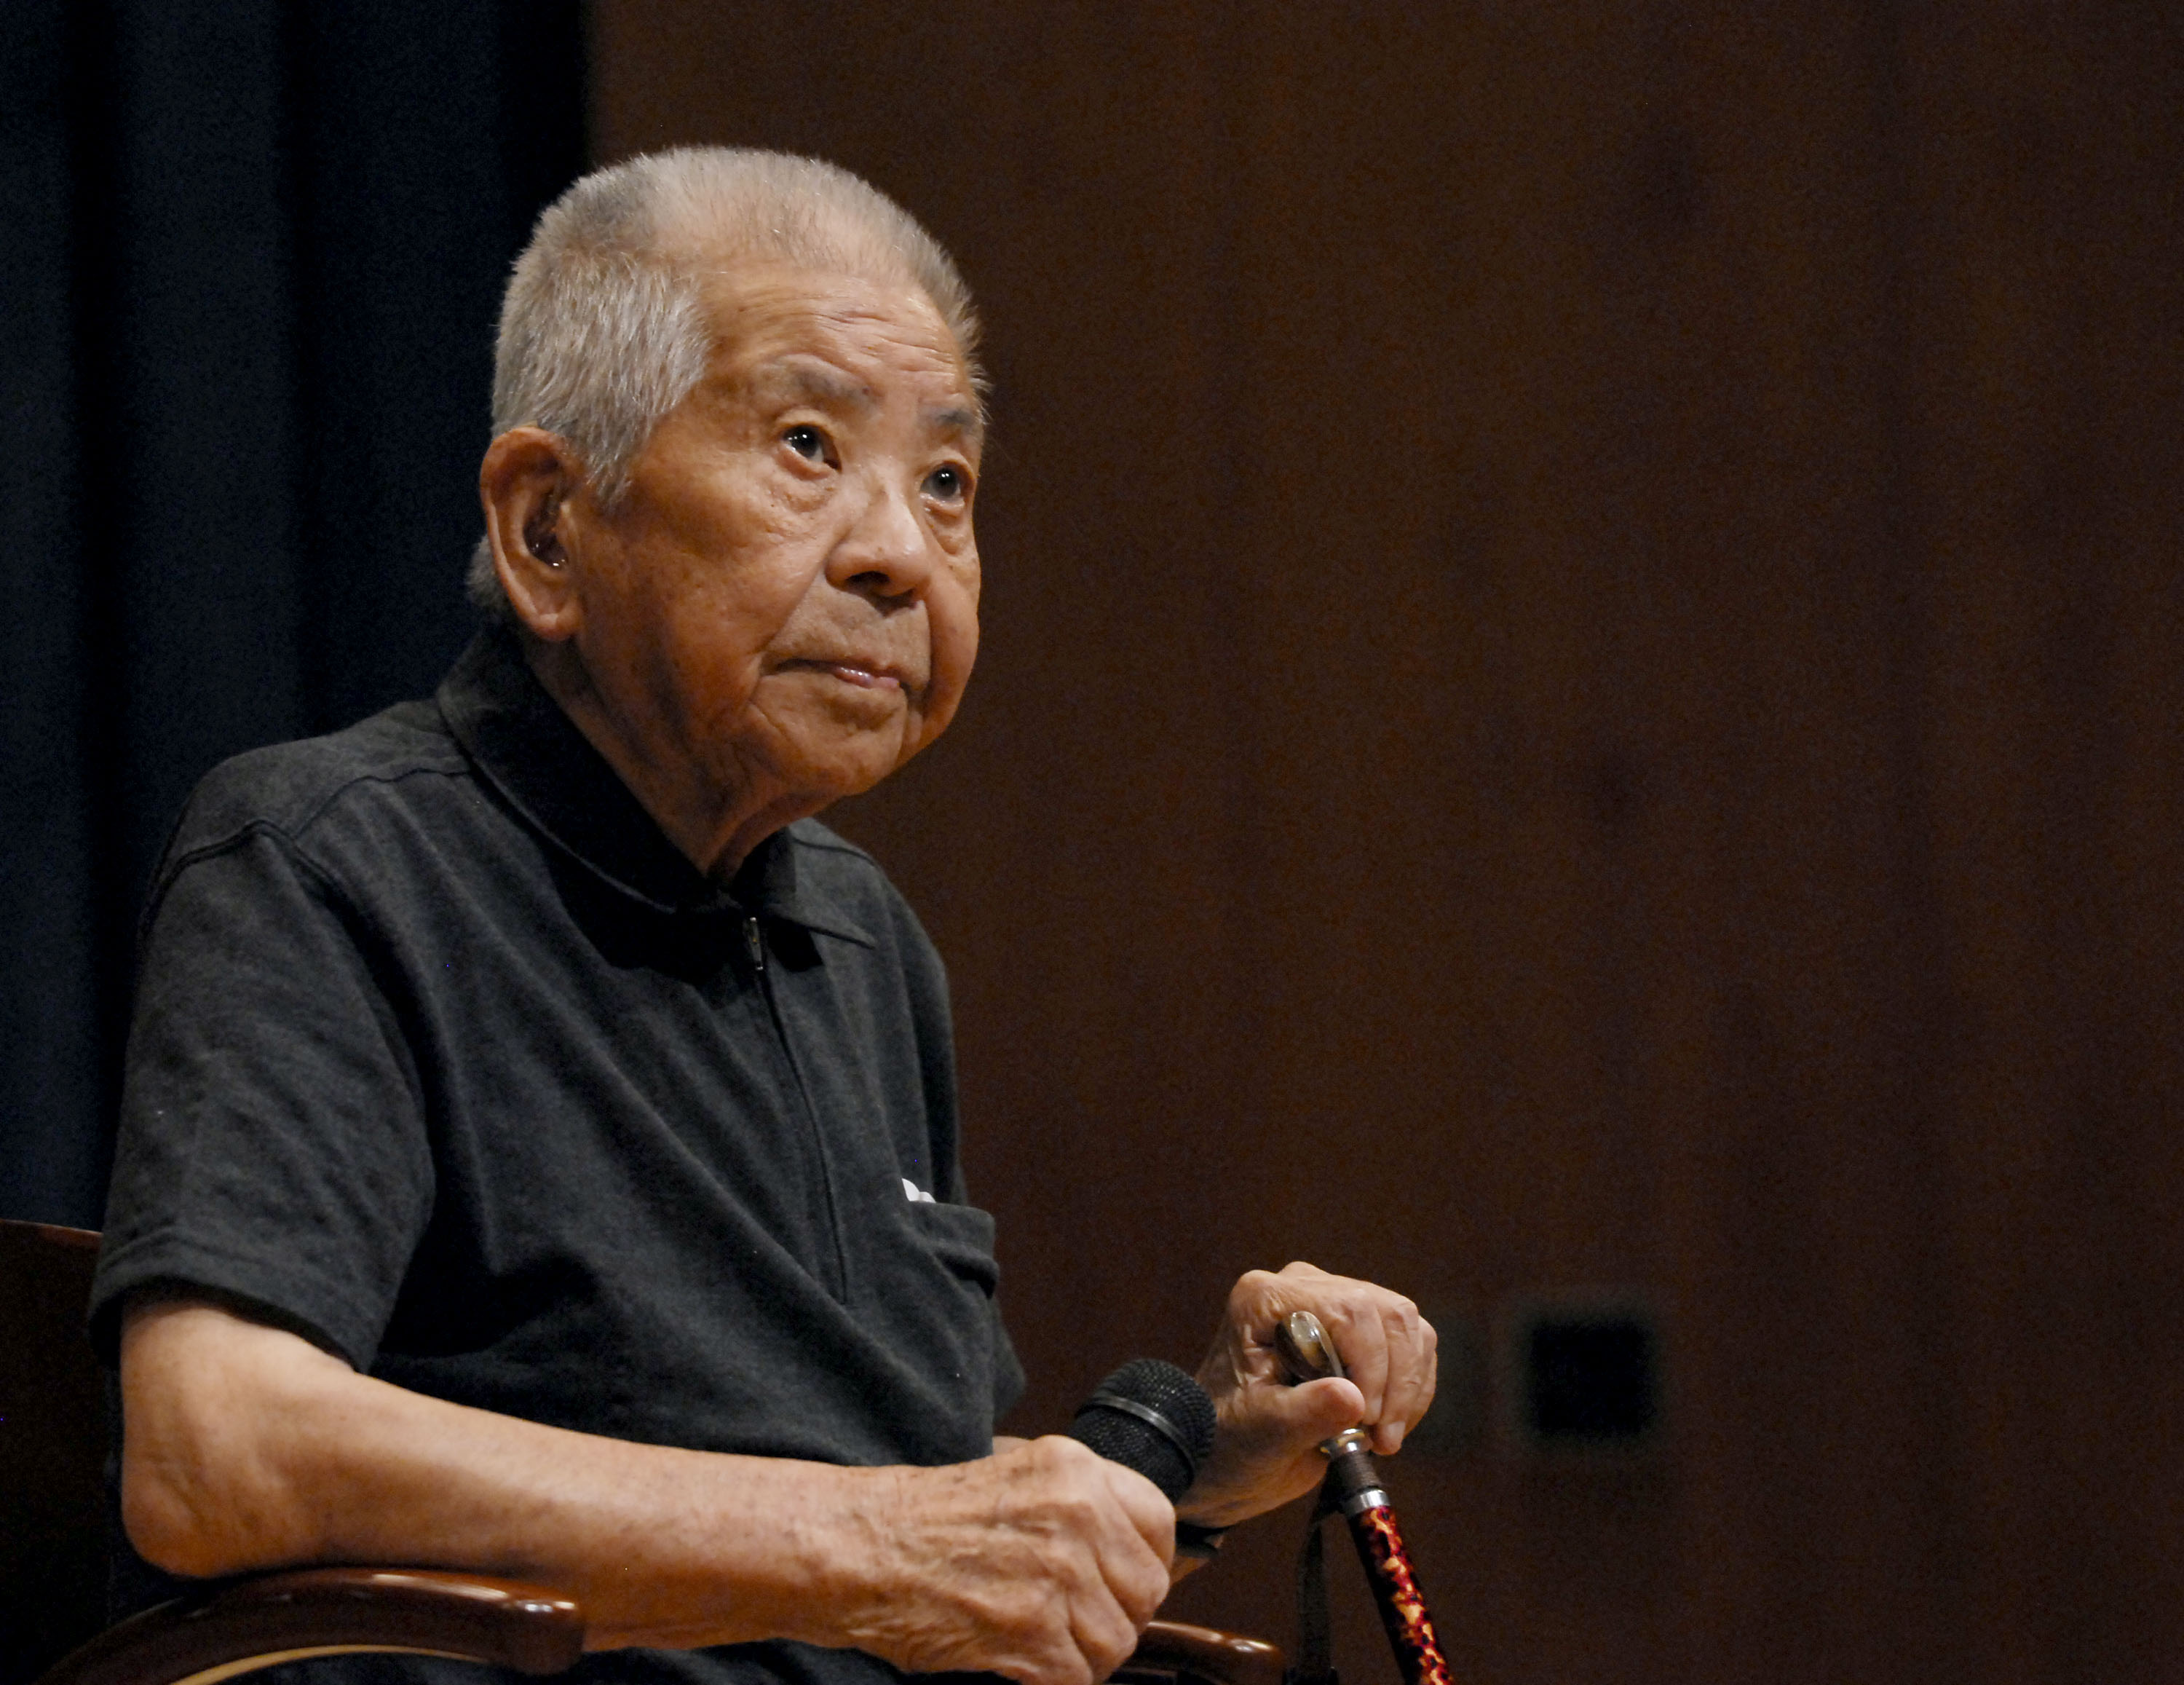 'Nijuuhibaku: Twice Bombed, Twice Survived' Screening and Q&A with Tsutomu Yamaguchi, Survivor of the Hiroshima and Nagasaki Bombings.